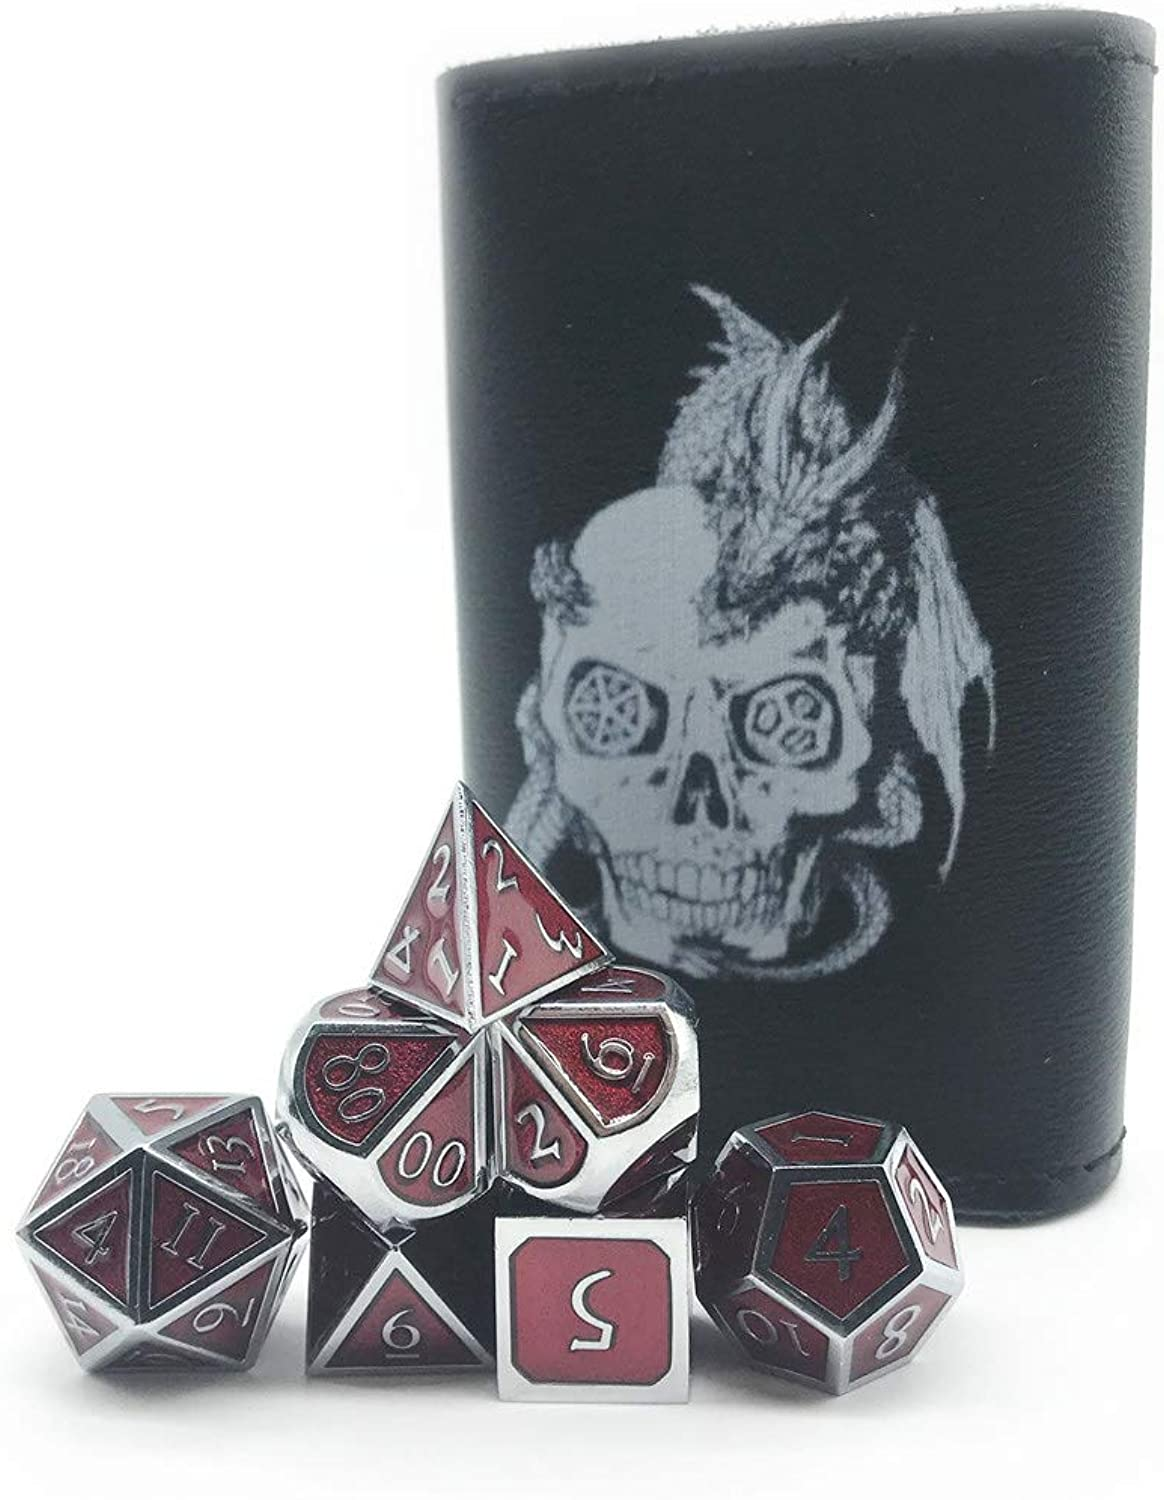 Truewon Solid Metallic Polyhedron Dice for DND RPG,Chrome color & Blood-red Background. (Set of 7 + Black PU Bag)